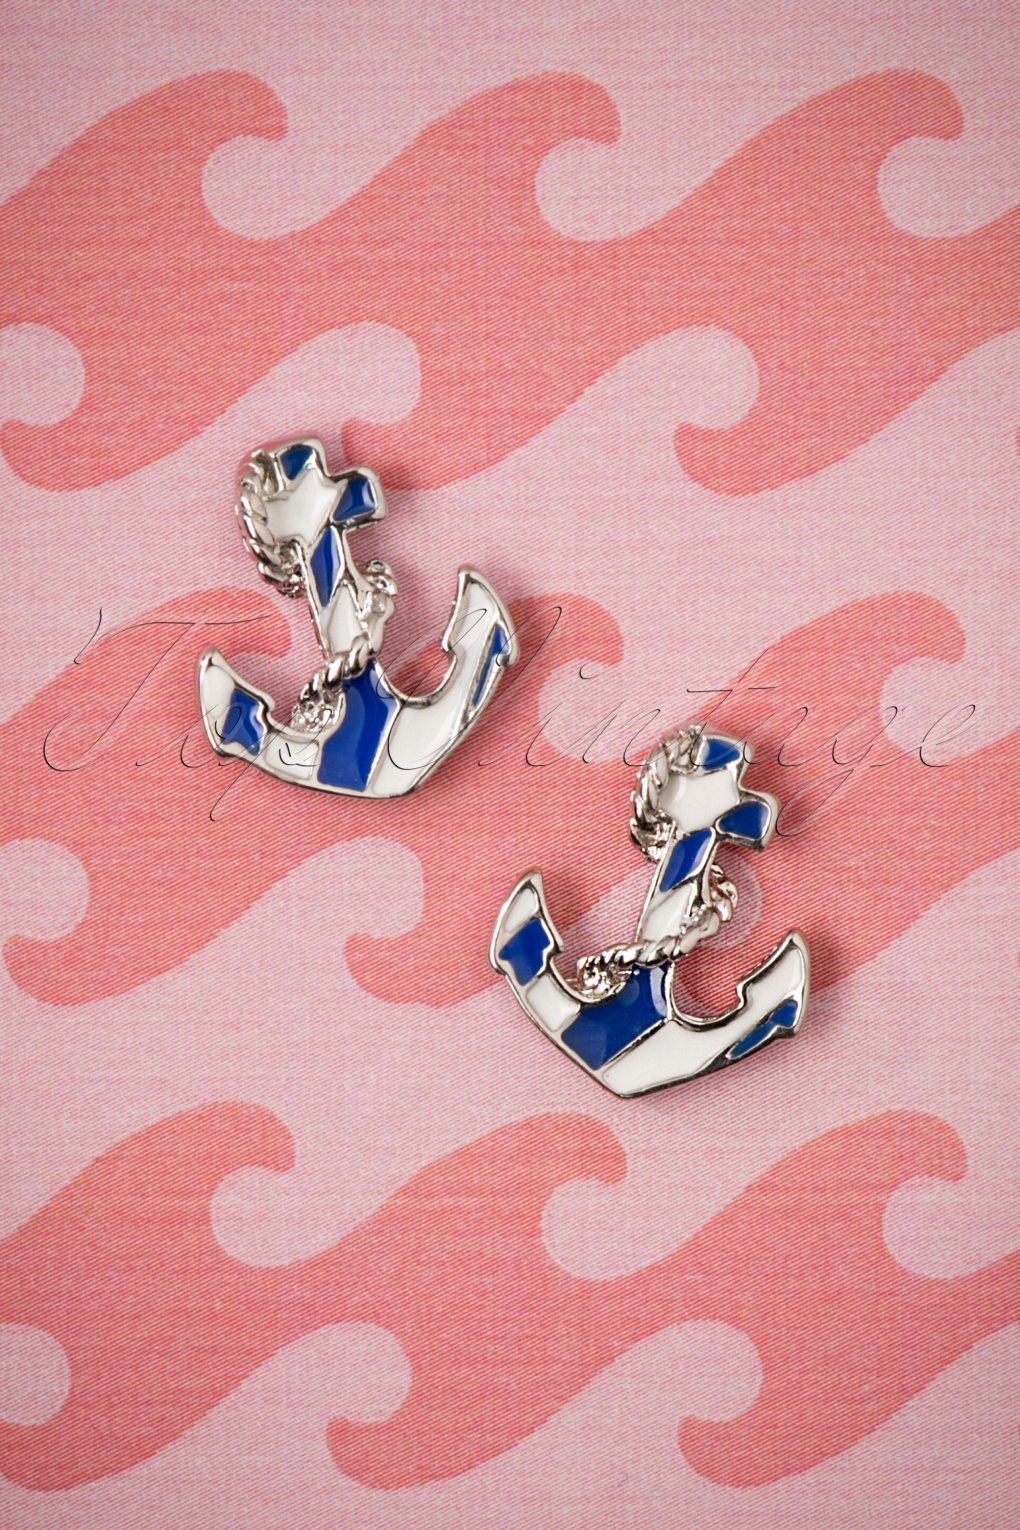 Vintage Cruise Outfits, Vacation Clothing 50s Anchor Earstuds in Silver £9.97 AT vintagedancer.com